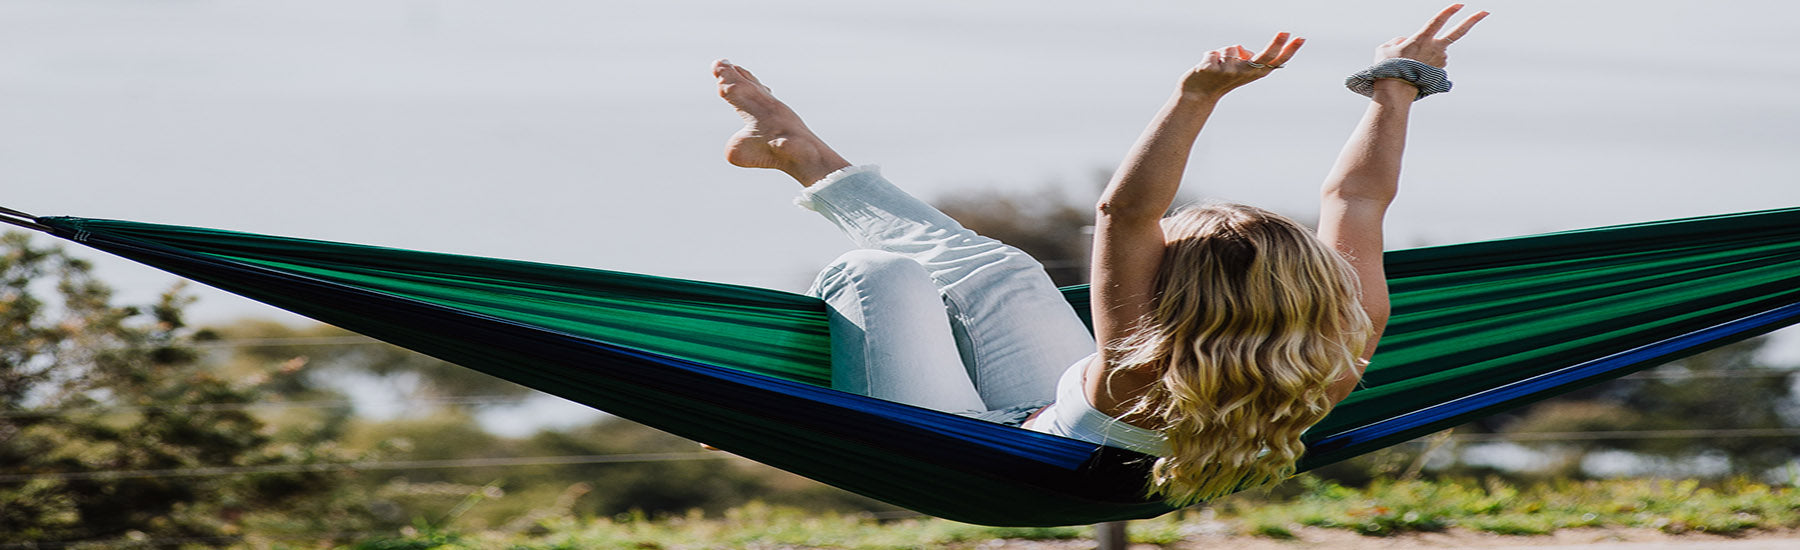 Hammock Universe USA Southern Style Winter with women in parachute green and blue hammock